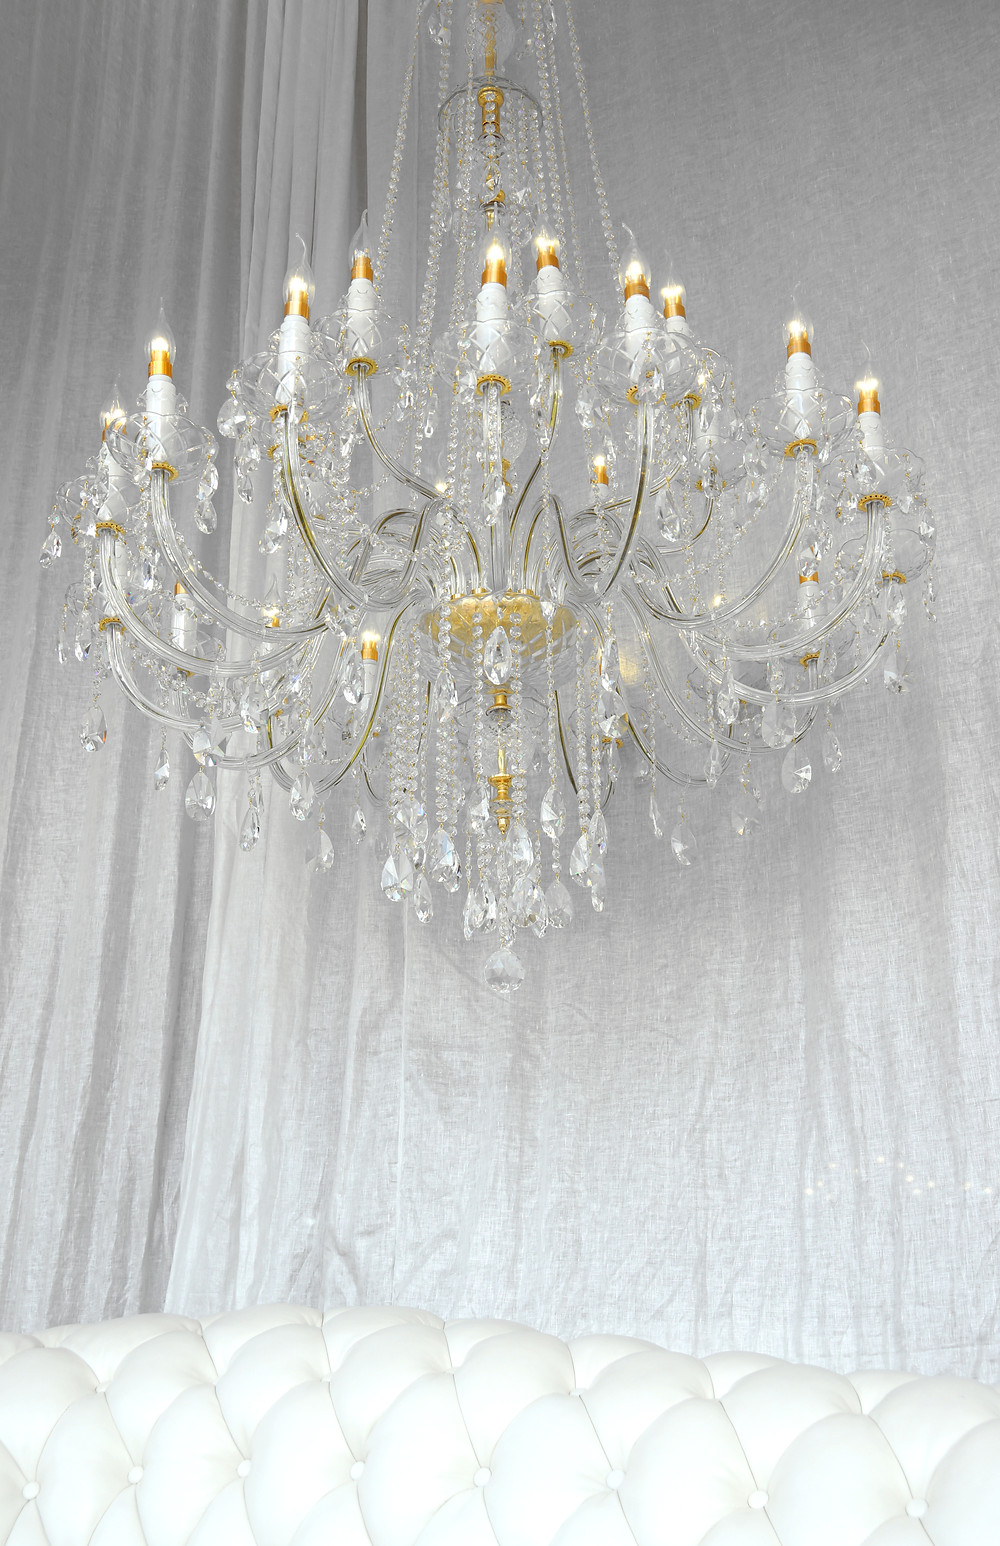 Super large crystal chandelier for entryway, staircase, living room